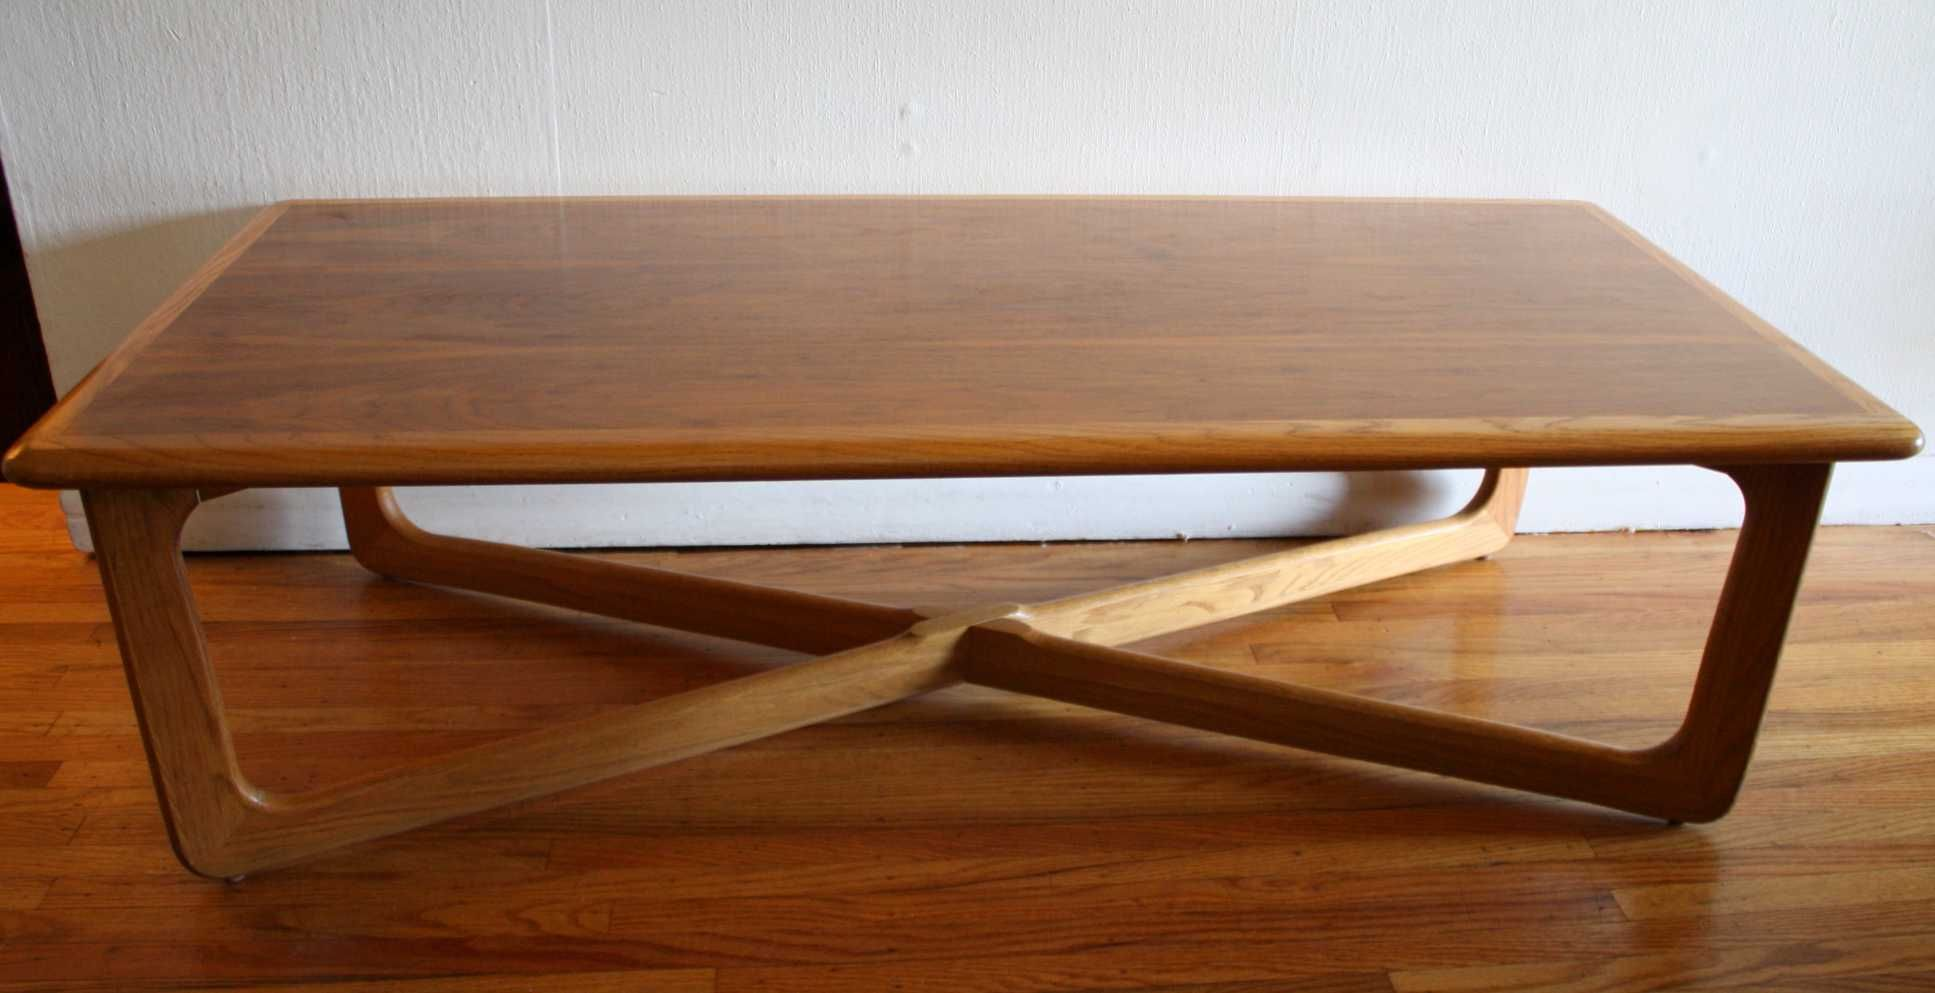 Information Mid Century Modern Coffee Table For Sale With Images Mid Century Coffee Table Mid Century Modern Coffee Table Dark Wood Coffee Table